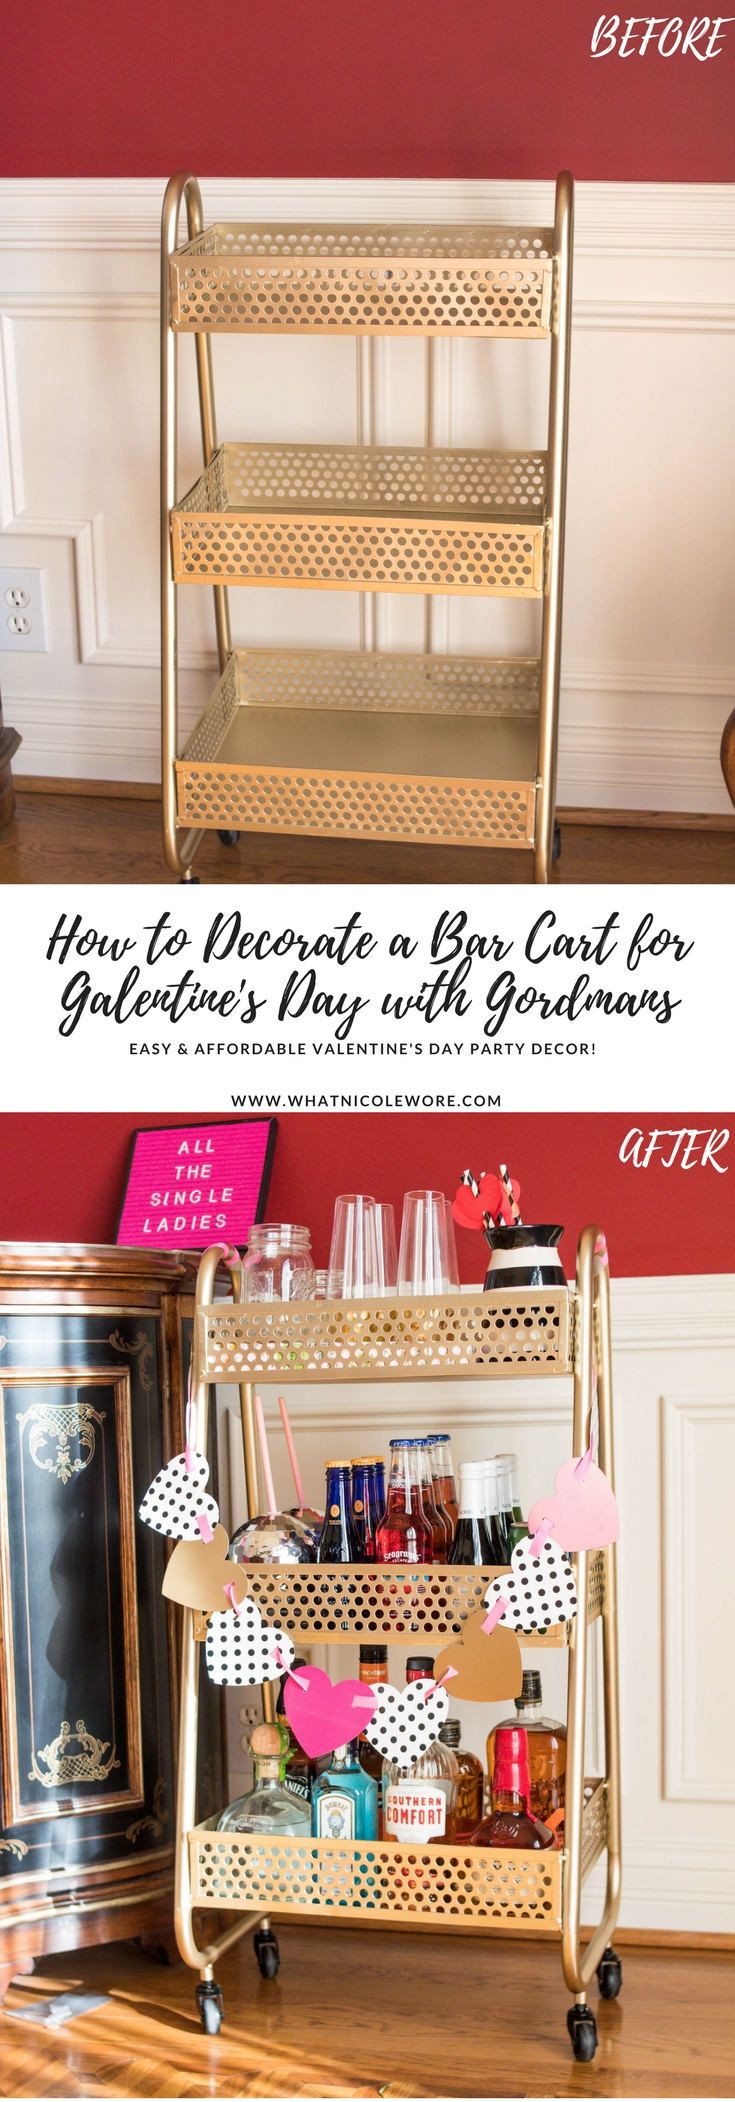 Southern lifestyle blogger, What Nicole Wore, shares how to find an affordable bar cart plus how you can decorate it in time for your Valentine's Day party. [sponsored] // how to style a bar cart, gold bar cart under $100, tips for shopping at gordmans, budget home decor, valentine's day party ideas, galentine party decorating tips, holiday bar cart ideas, cupid is stupid party